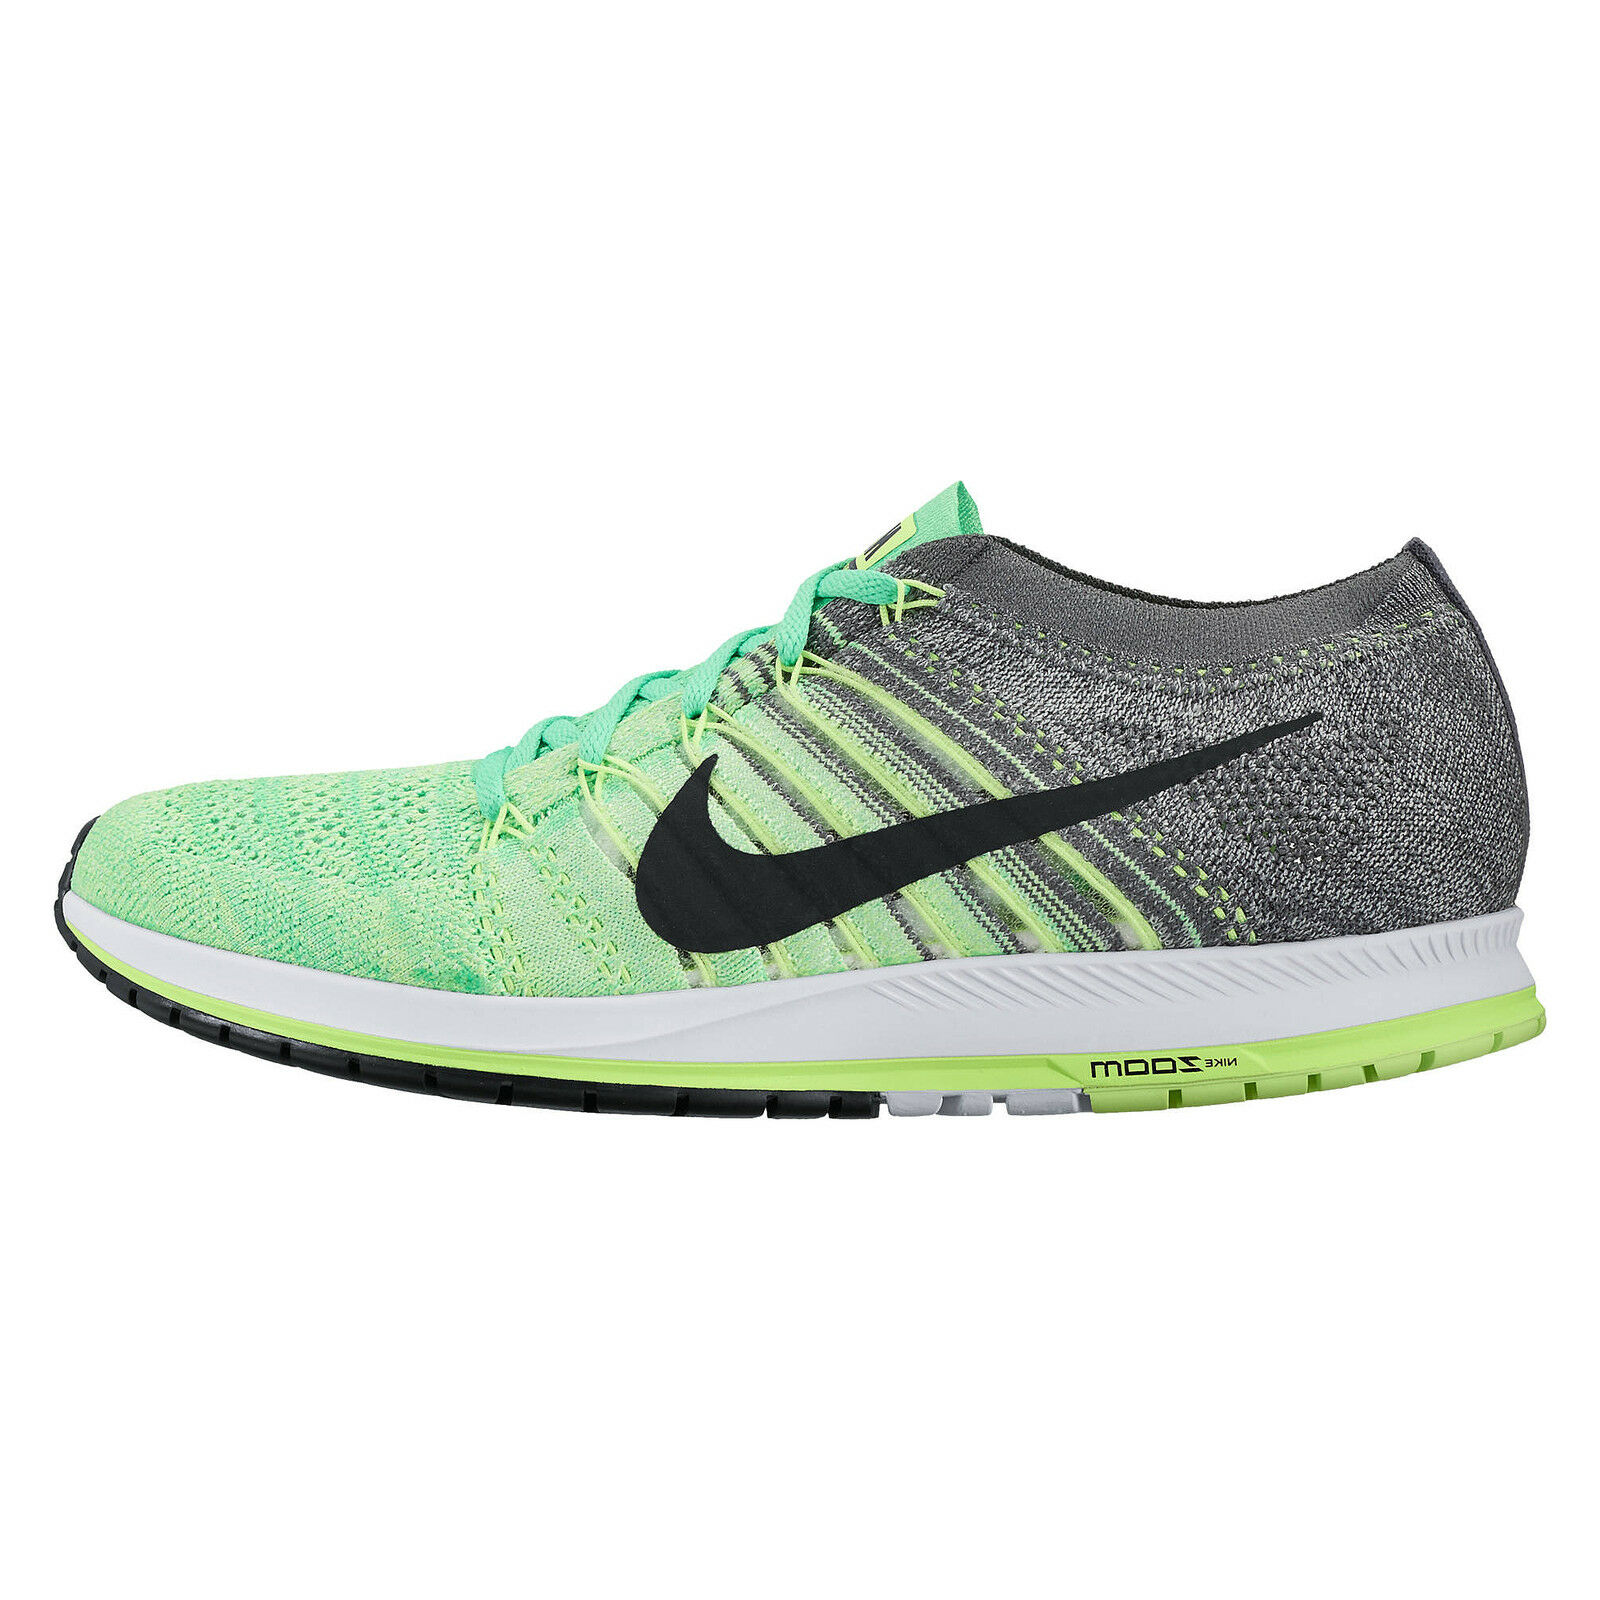 Nike Flyknit Streak 835994-303 Athletic shoes Running shoes